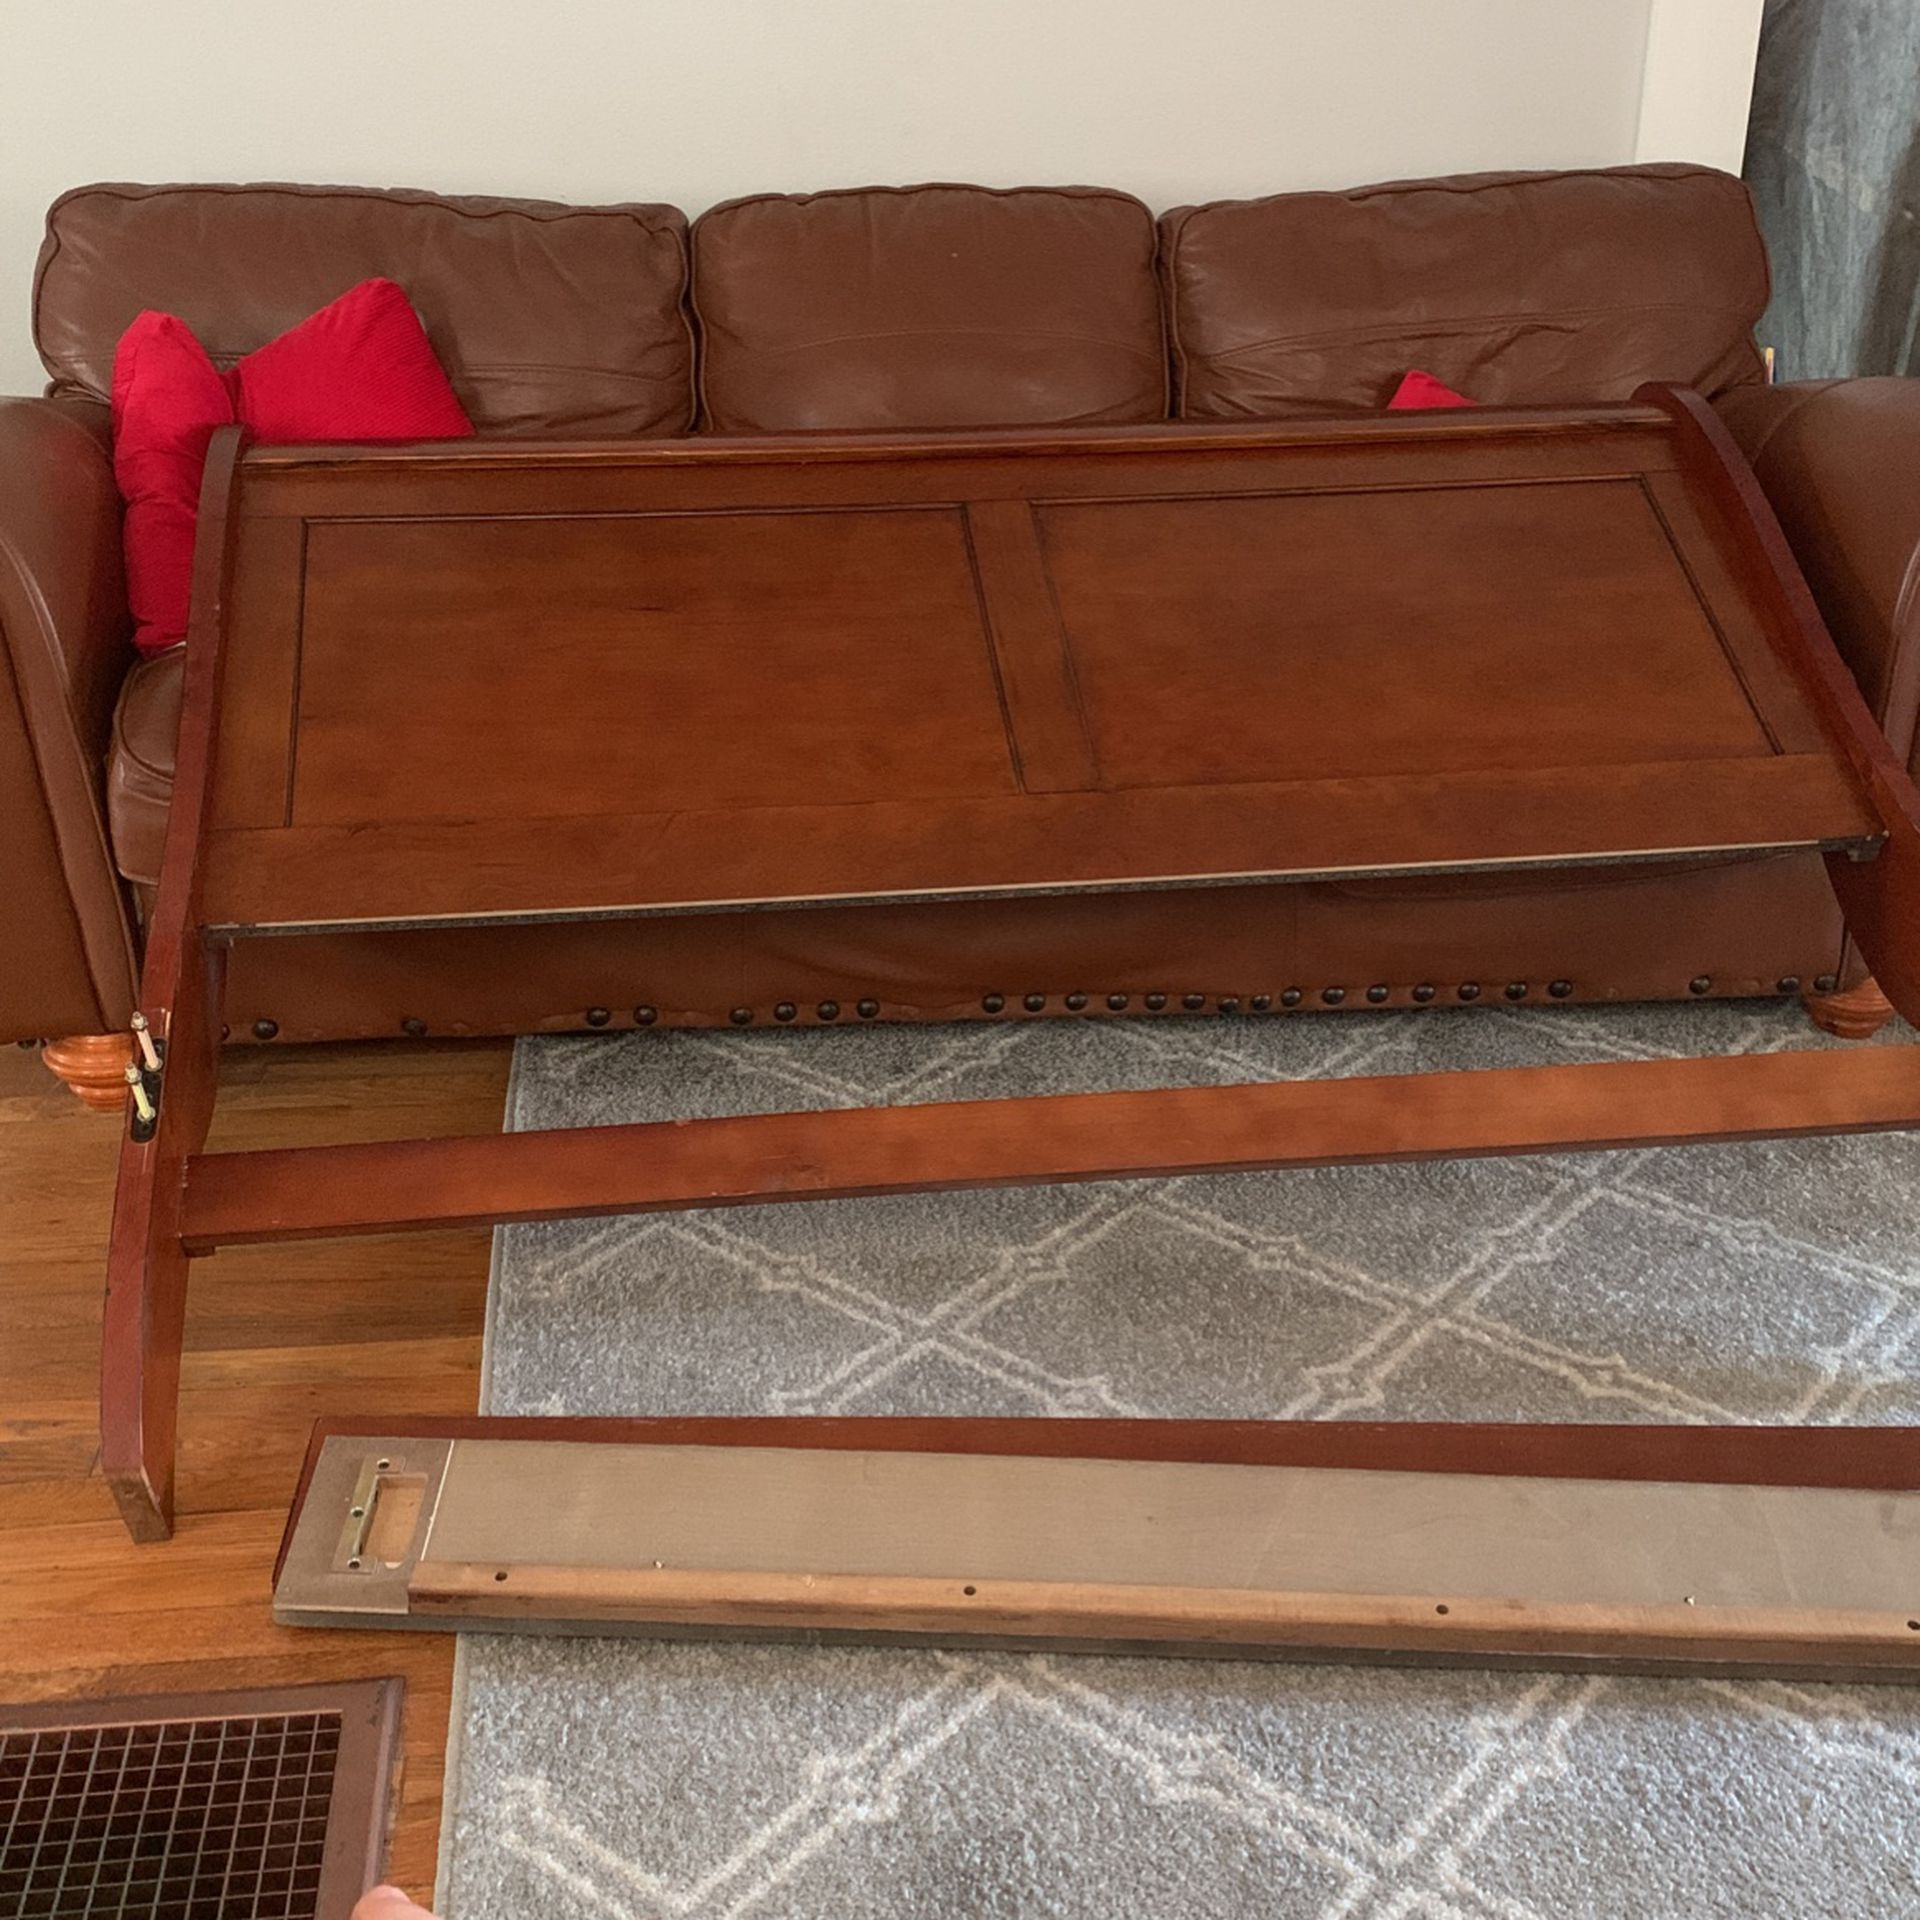 Queen Head Rest,feet Rest And Box Spring